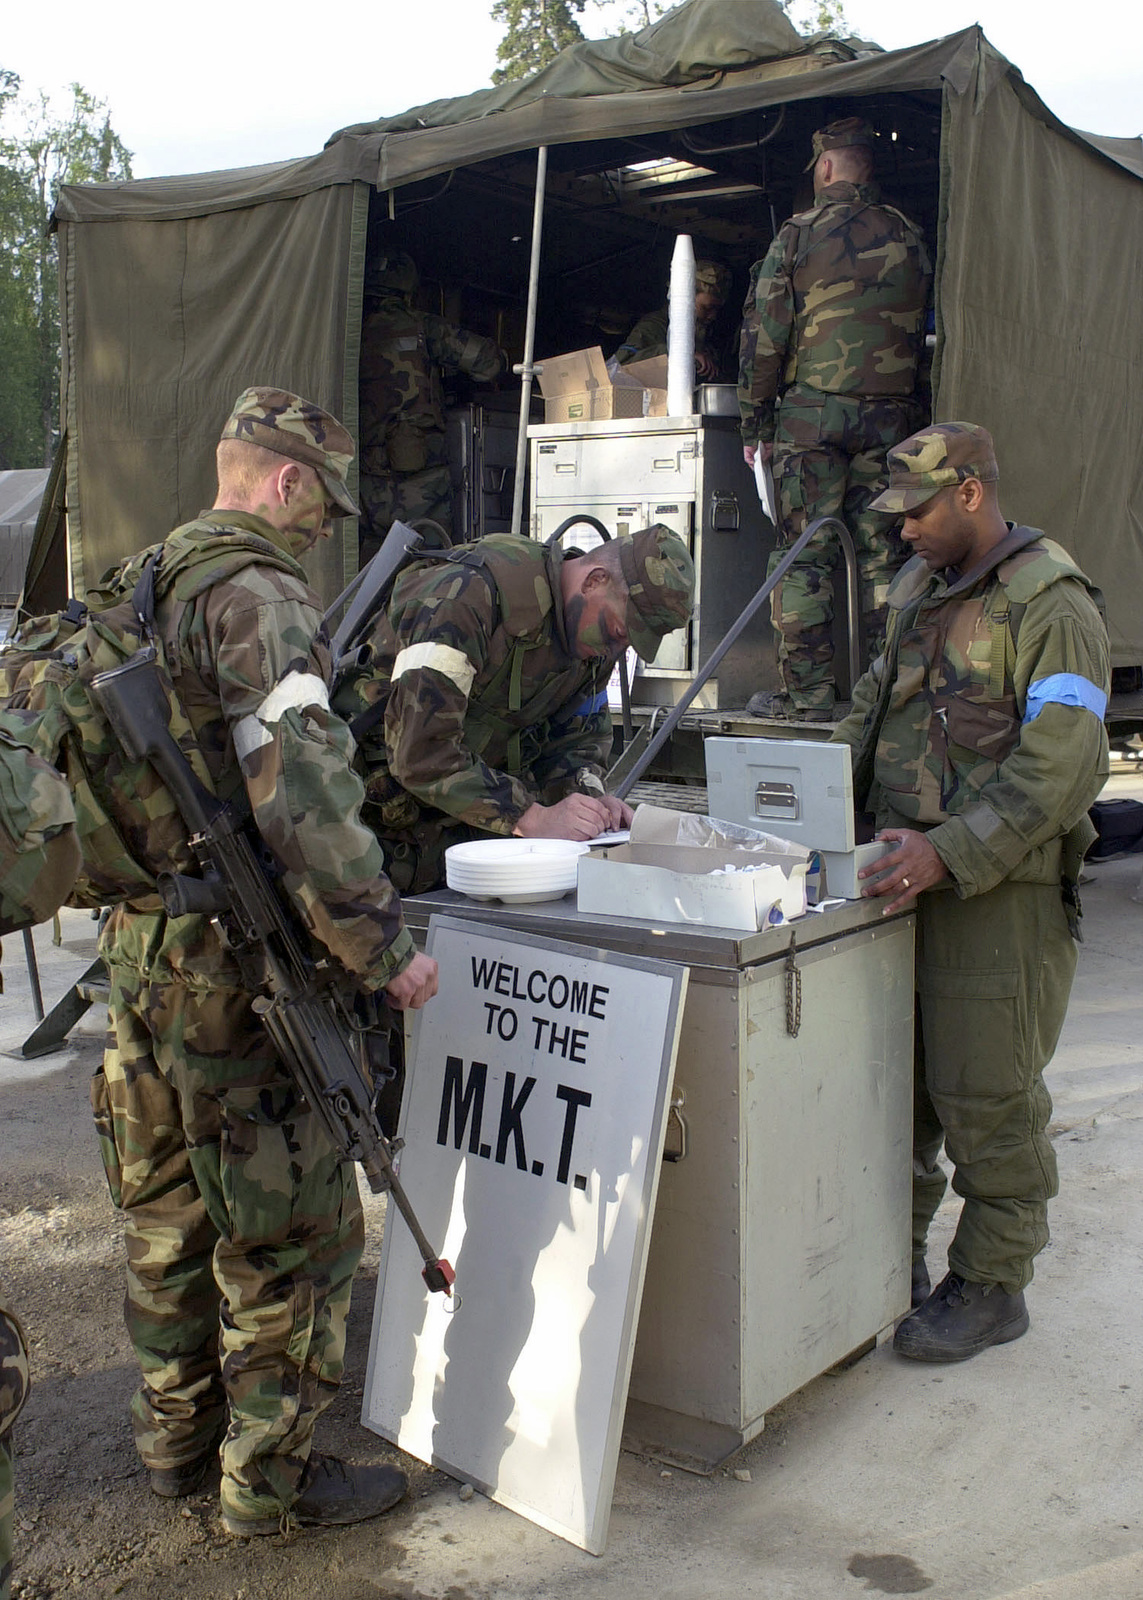 STAFF Sergeant Michael Harris (r), 3rd Services Squadron, Elmendorf AFB, collects money from Security Forces troops prior to breakfast at the Mobile Kitchen Trailer on Camp Mad Bull